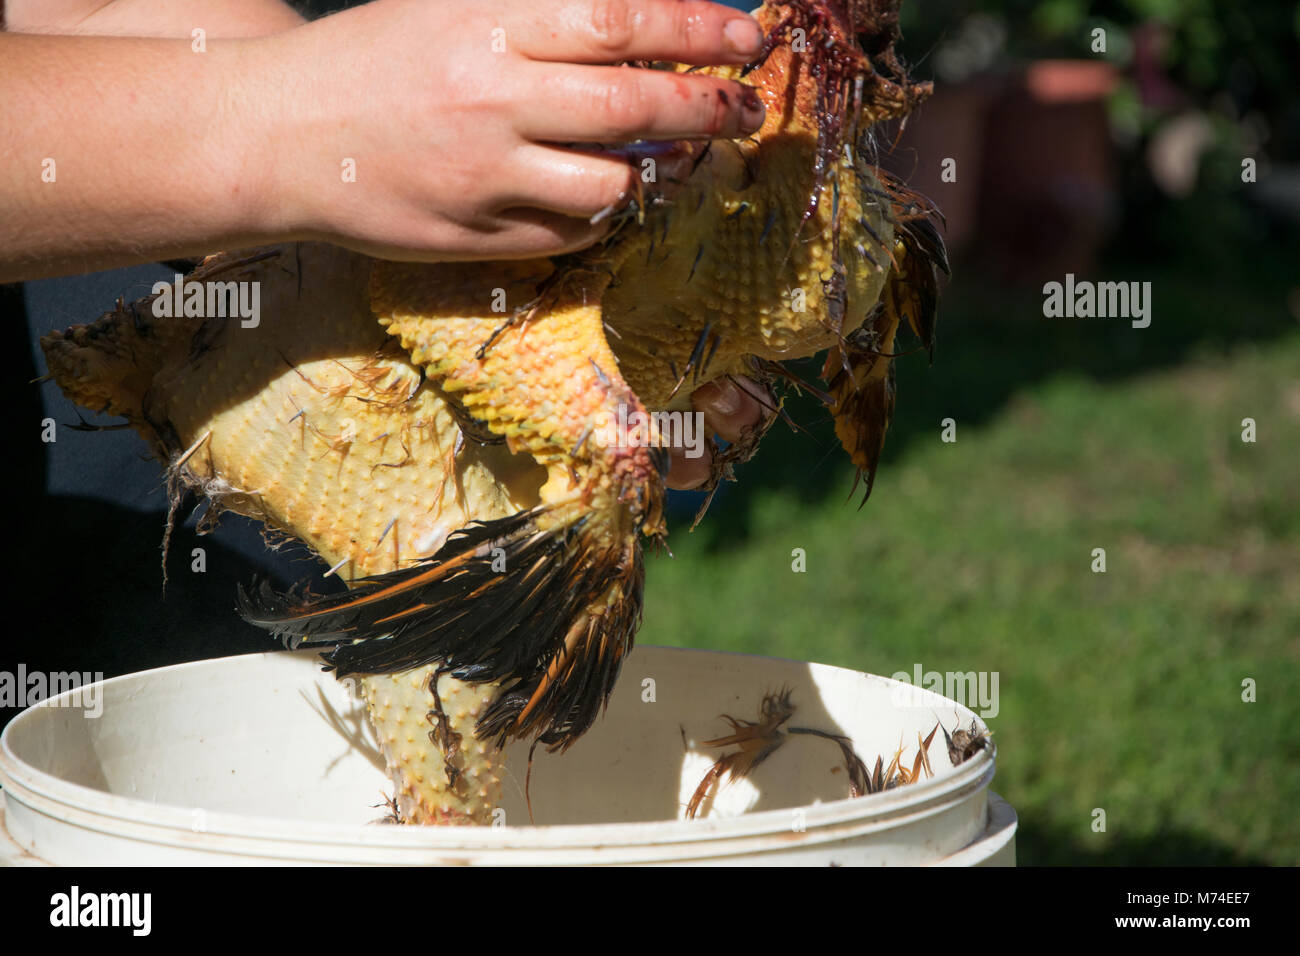 Authentic farm life. Close Up of woman hands that tear off the feathers of the hen - Stock Image